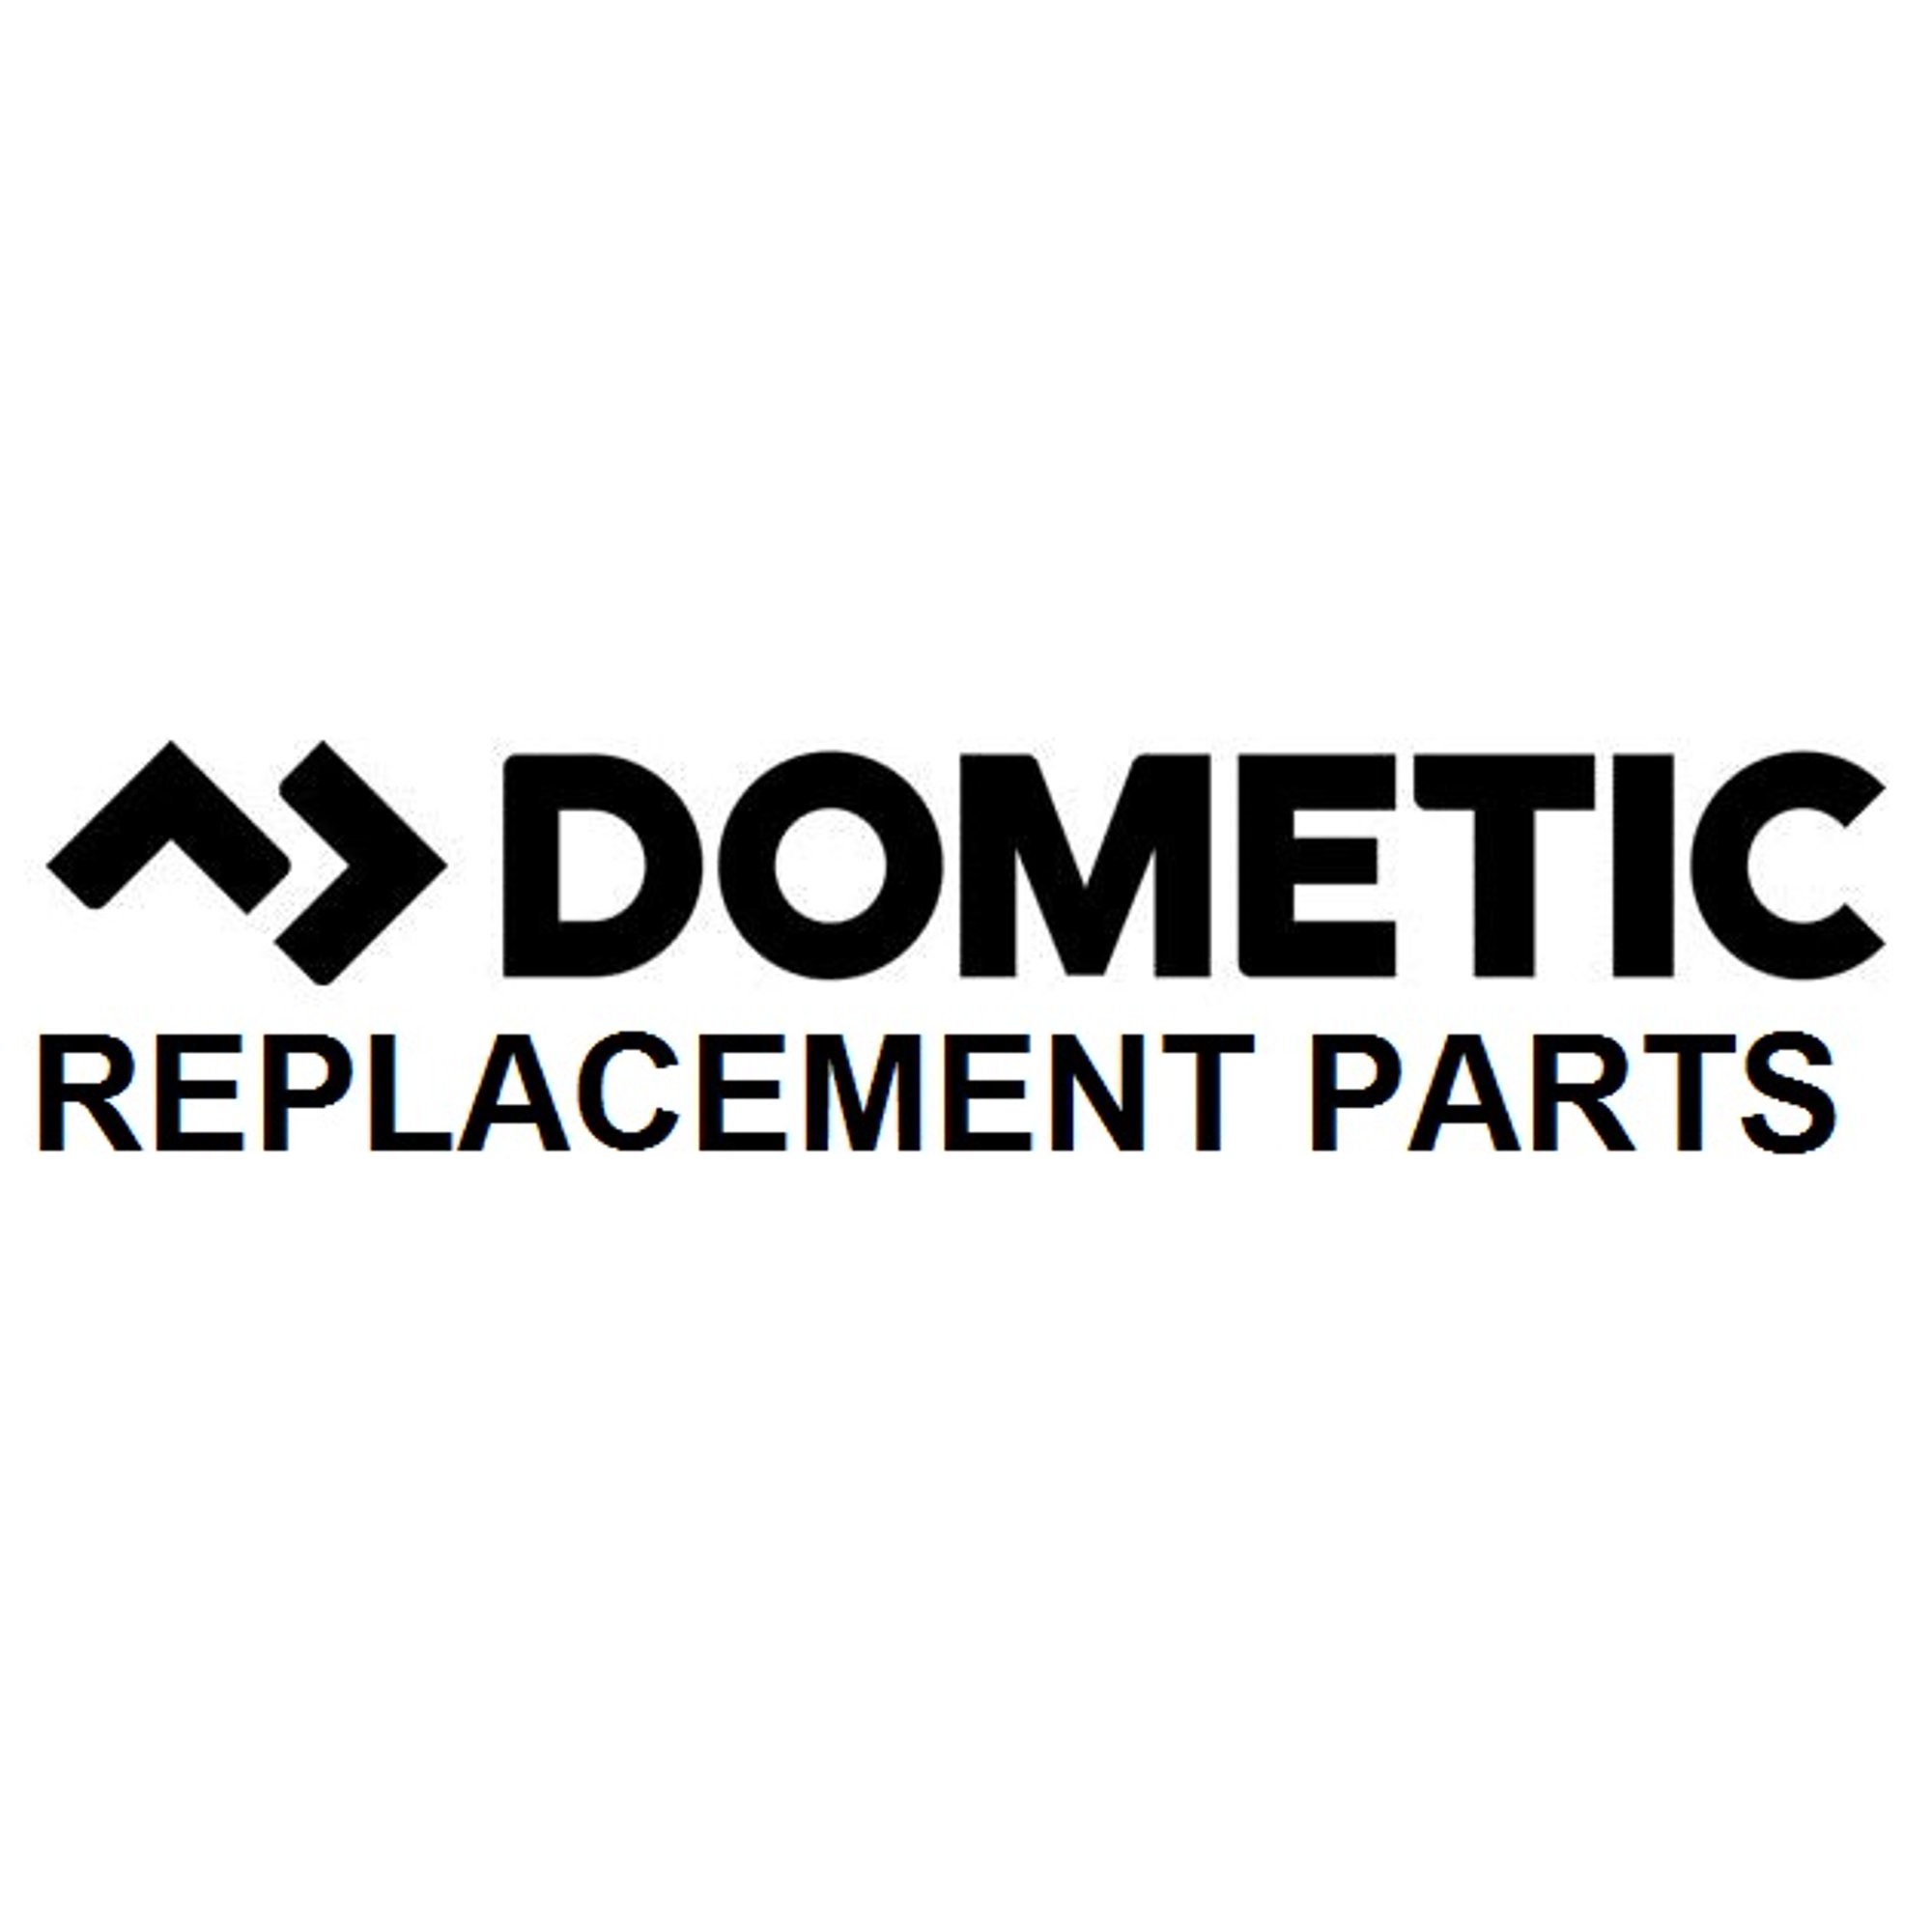 Dometic 2932641034 Refrigerator Trim Replacement For Dometic RM2862